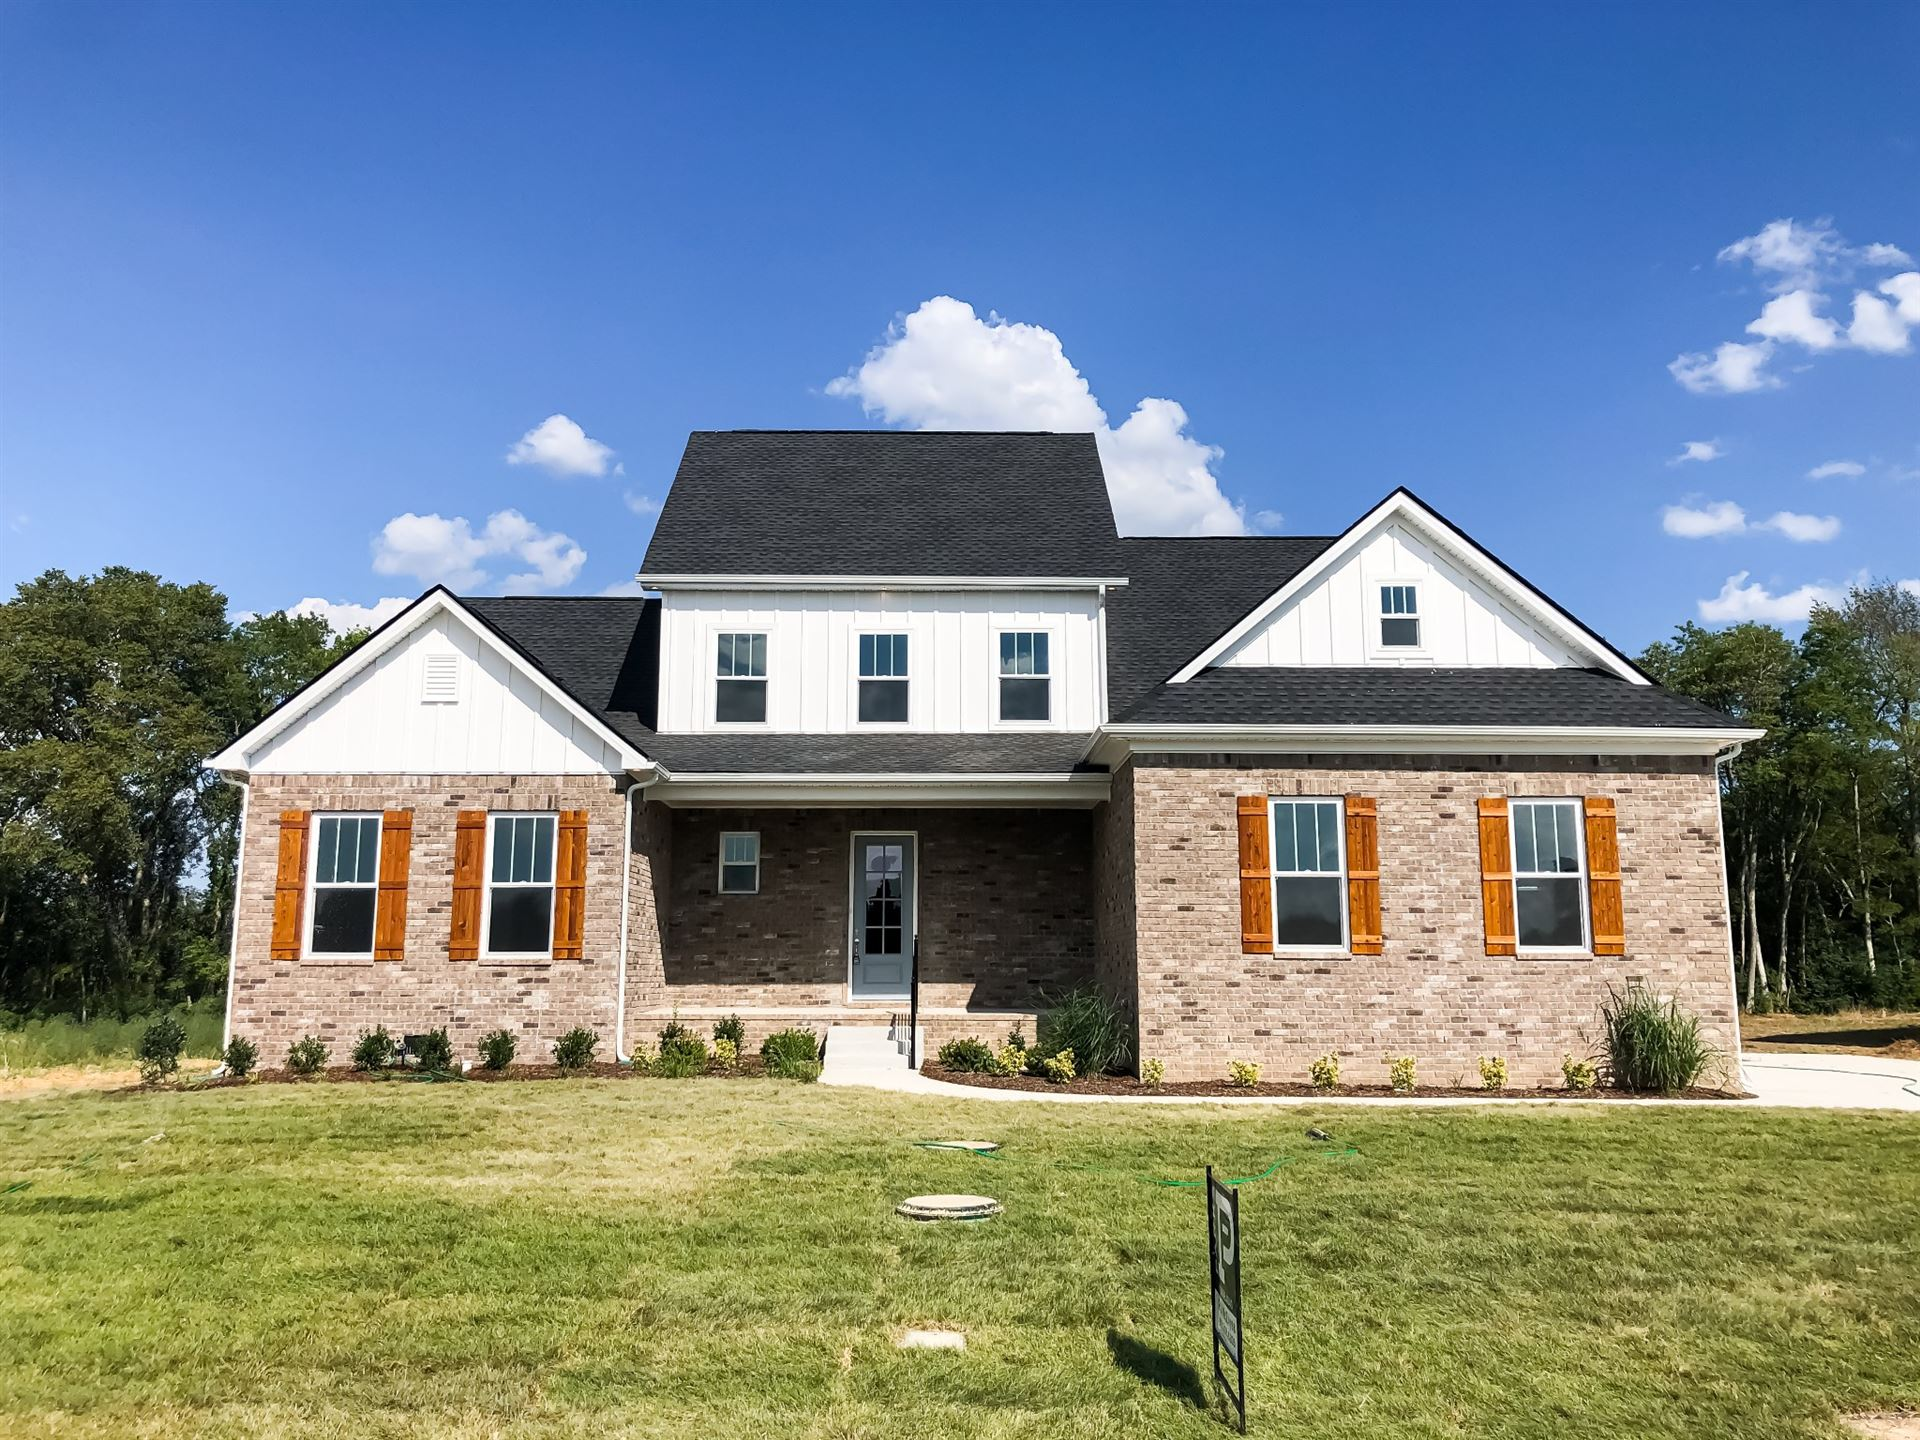 620 Chrisview Court Lot 214, Murfreesboro, TN 37129 - MLS#: 2167845